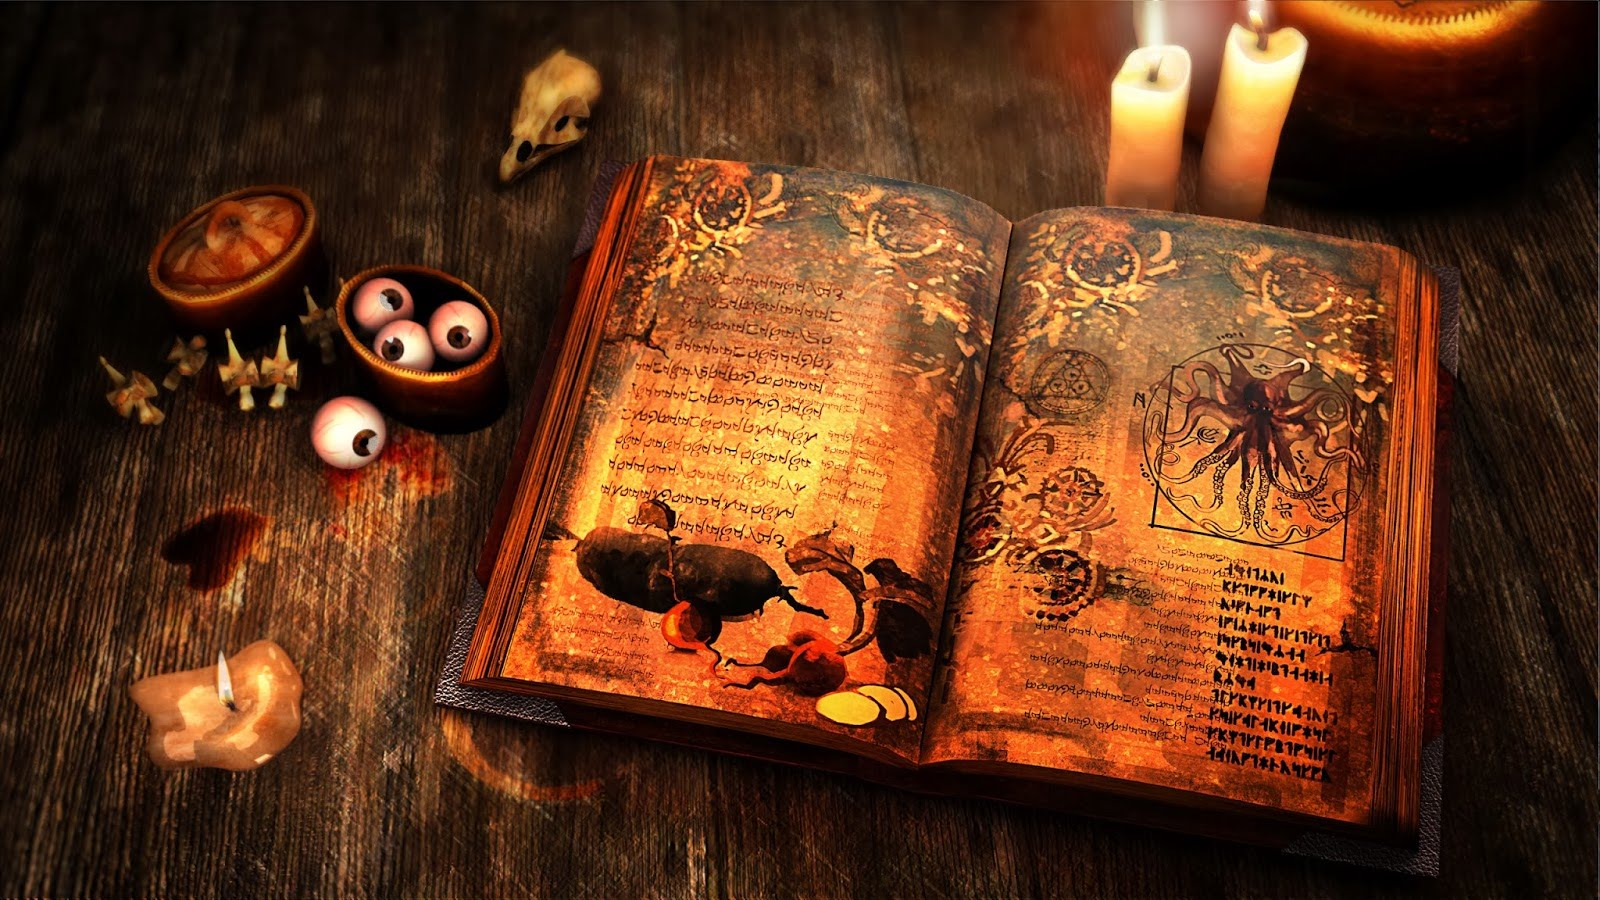 The Book Of Spells</a><br> by <a href='/profile/RavenHeart/'>RavenHeart</a>